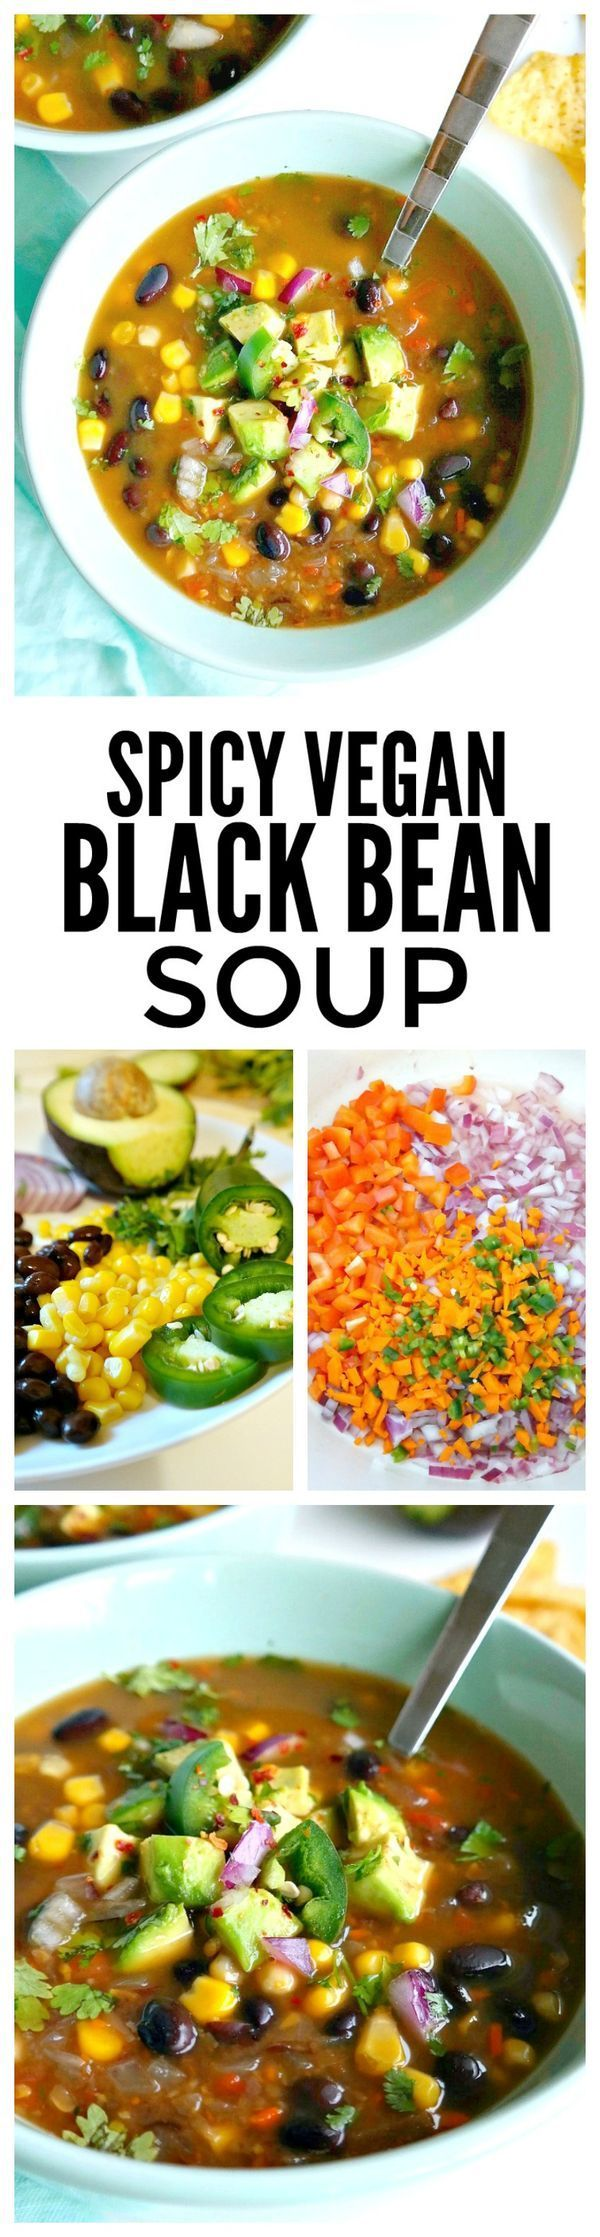 ... Black Bean Soup on Pinterest | Black Bean Soup, Soups and Black Beans